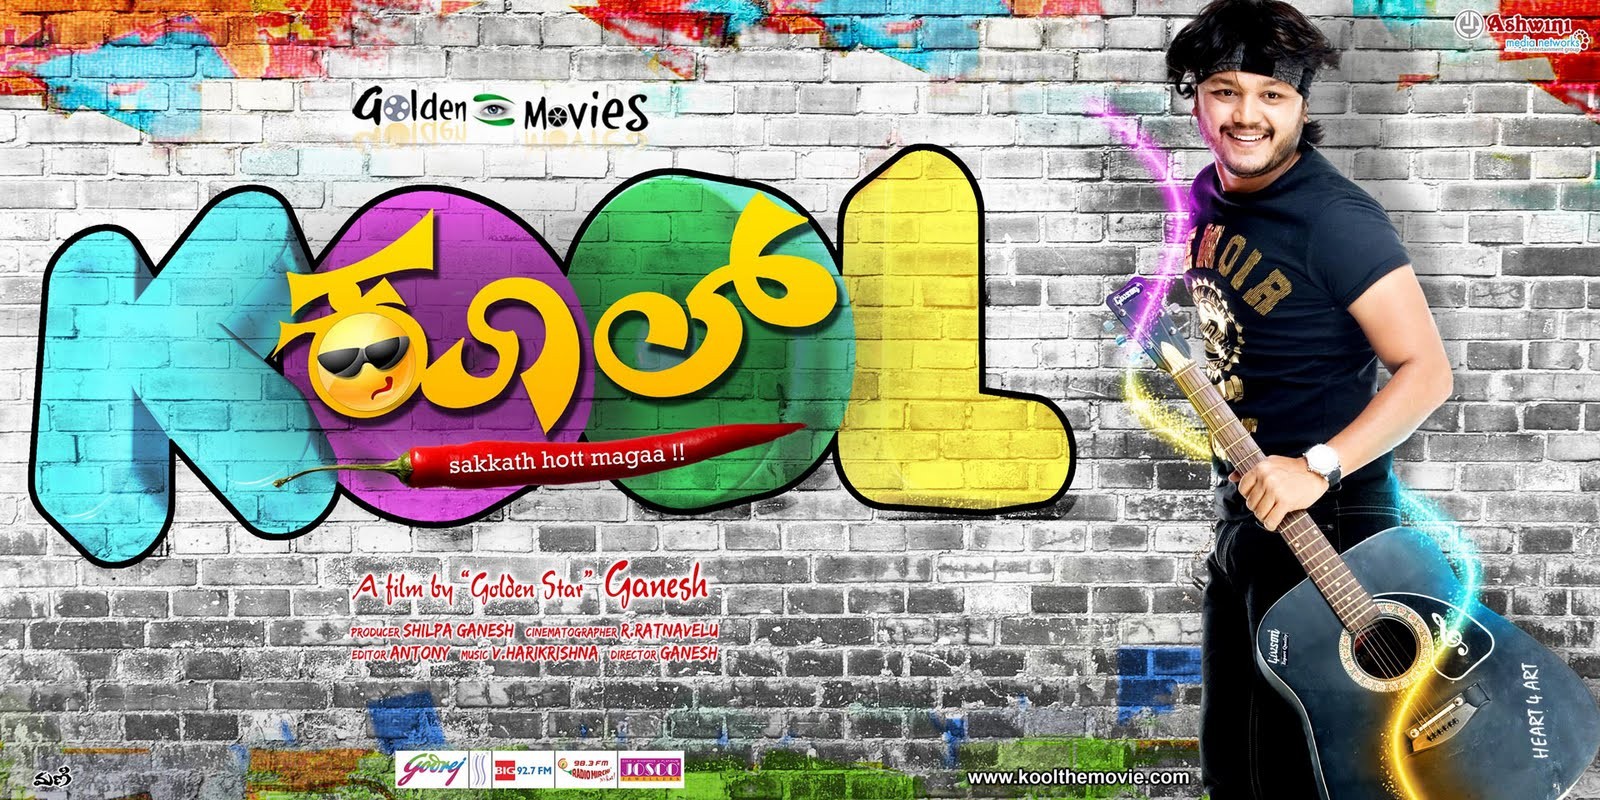 Golden Star Ganesh Kool Movie New Wallpaper